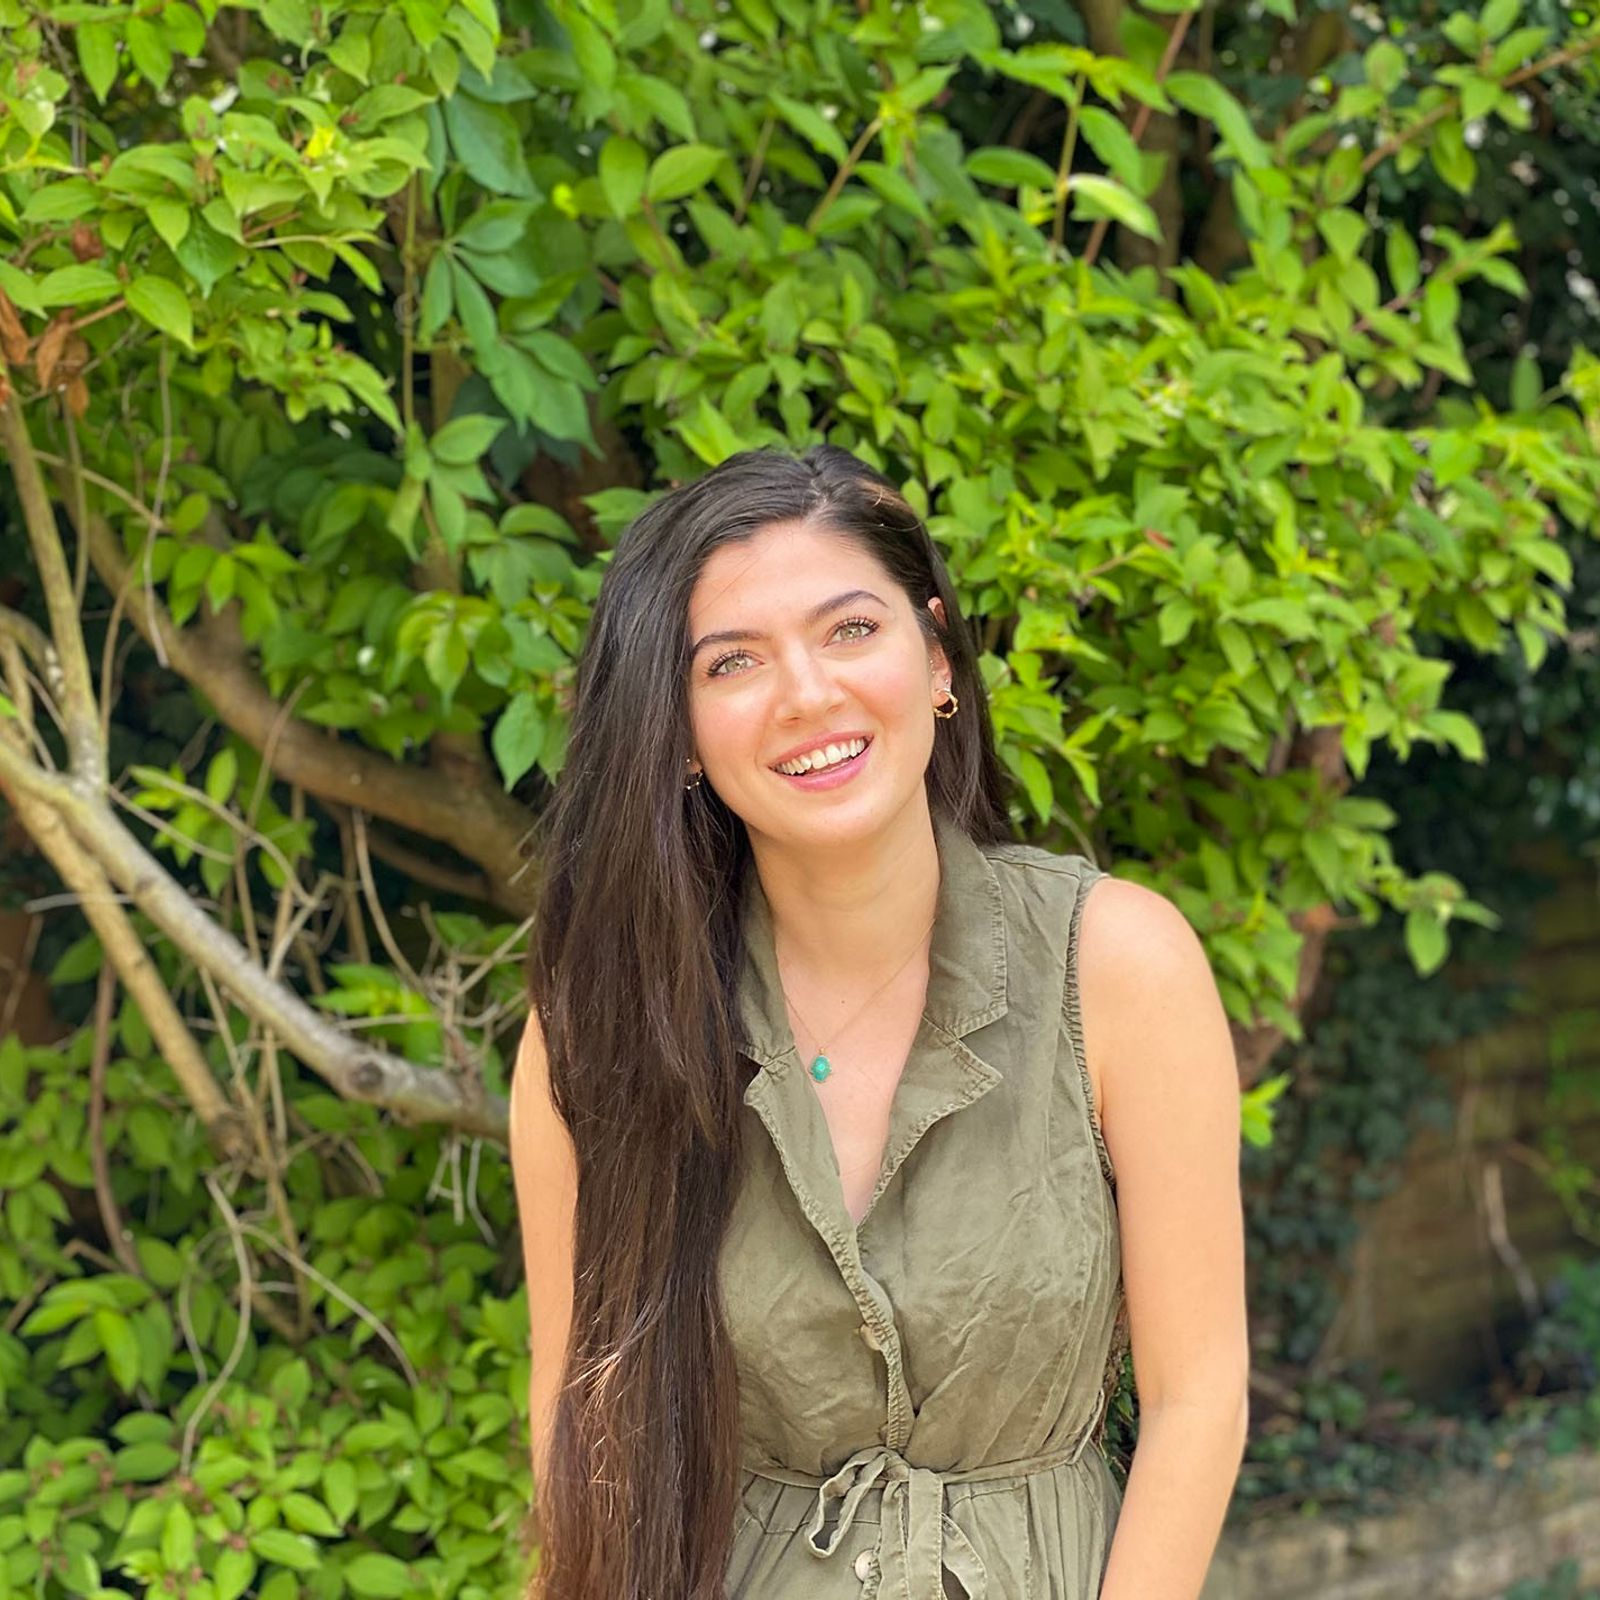 Farida Zeynalova is the author of Berlitz Pocket Guide Baku, and a contributing editor for National Geographic Traveller ...